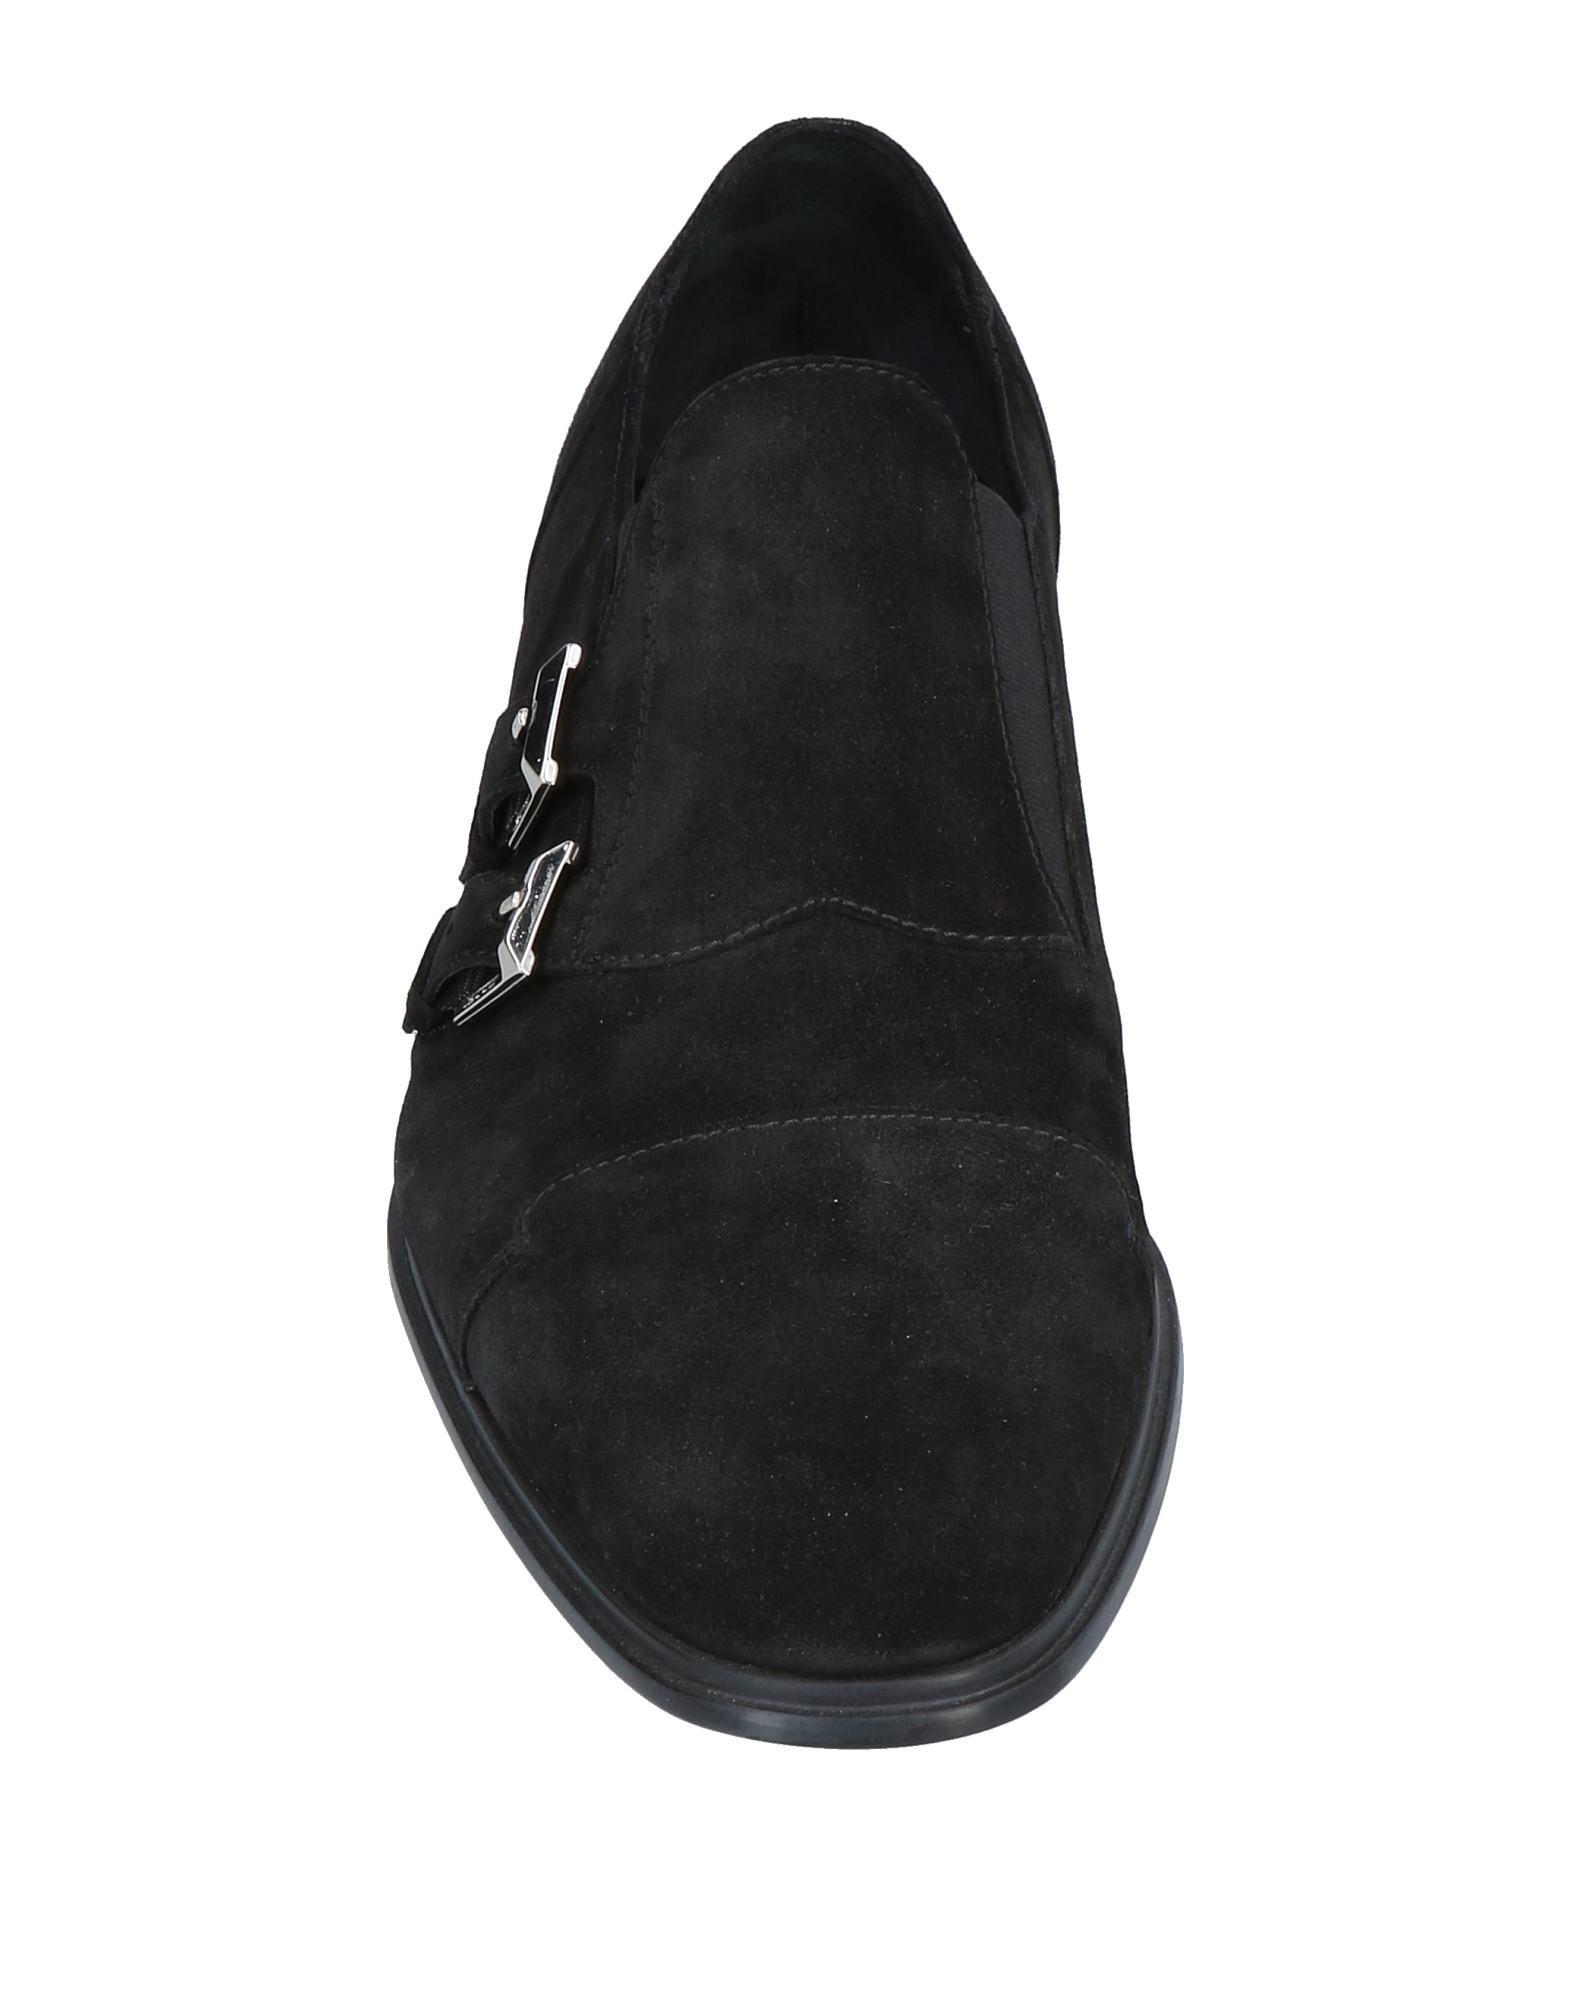 Cesare Paciotti Suede Loafer in Black for Men